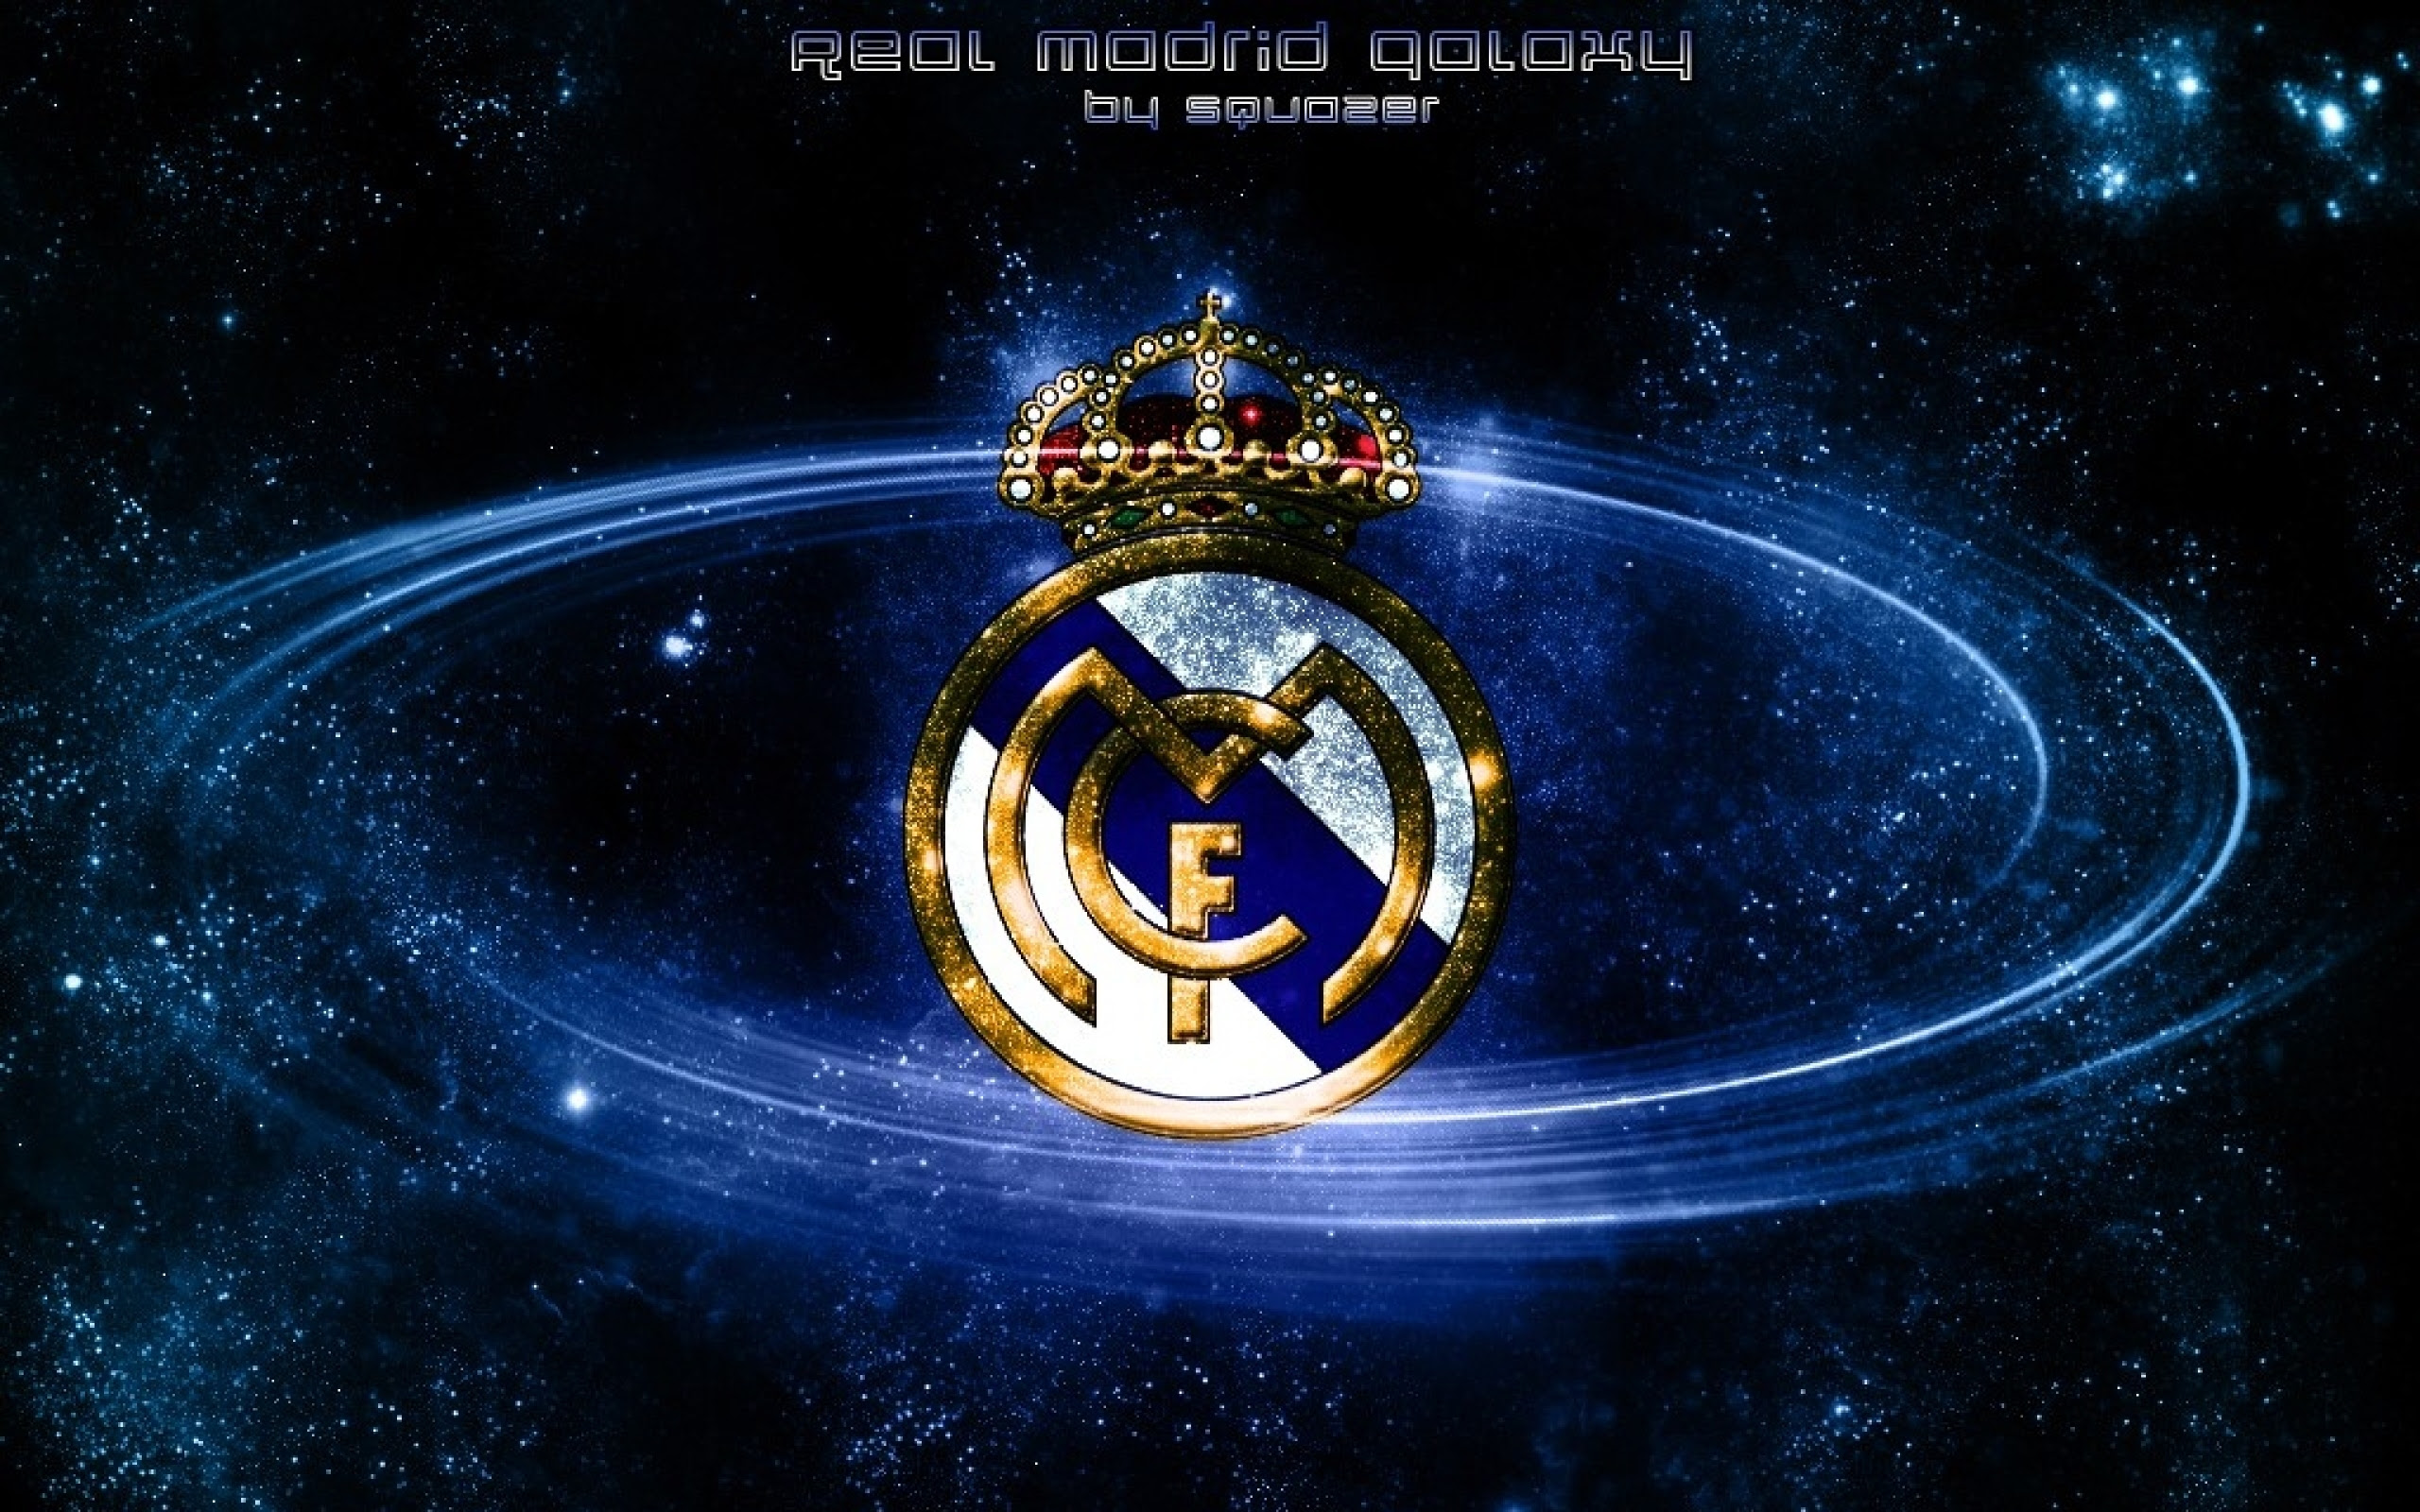 Real Madrid Wallpaper Blue Hd Football